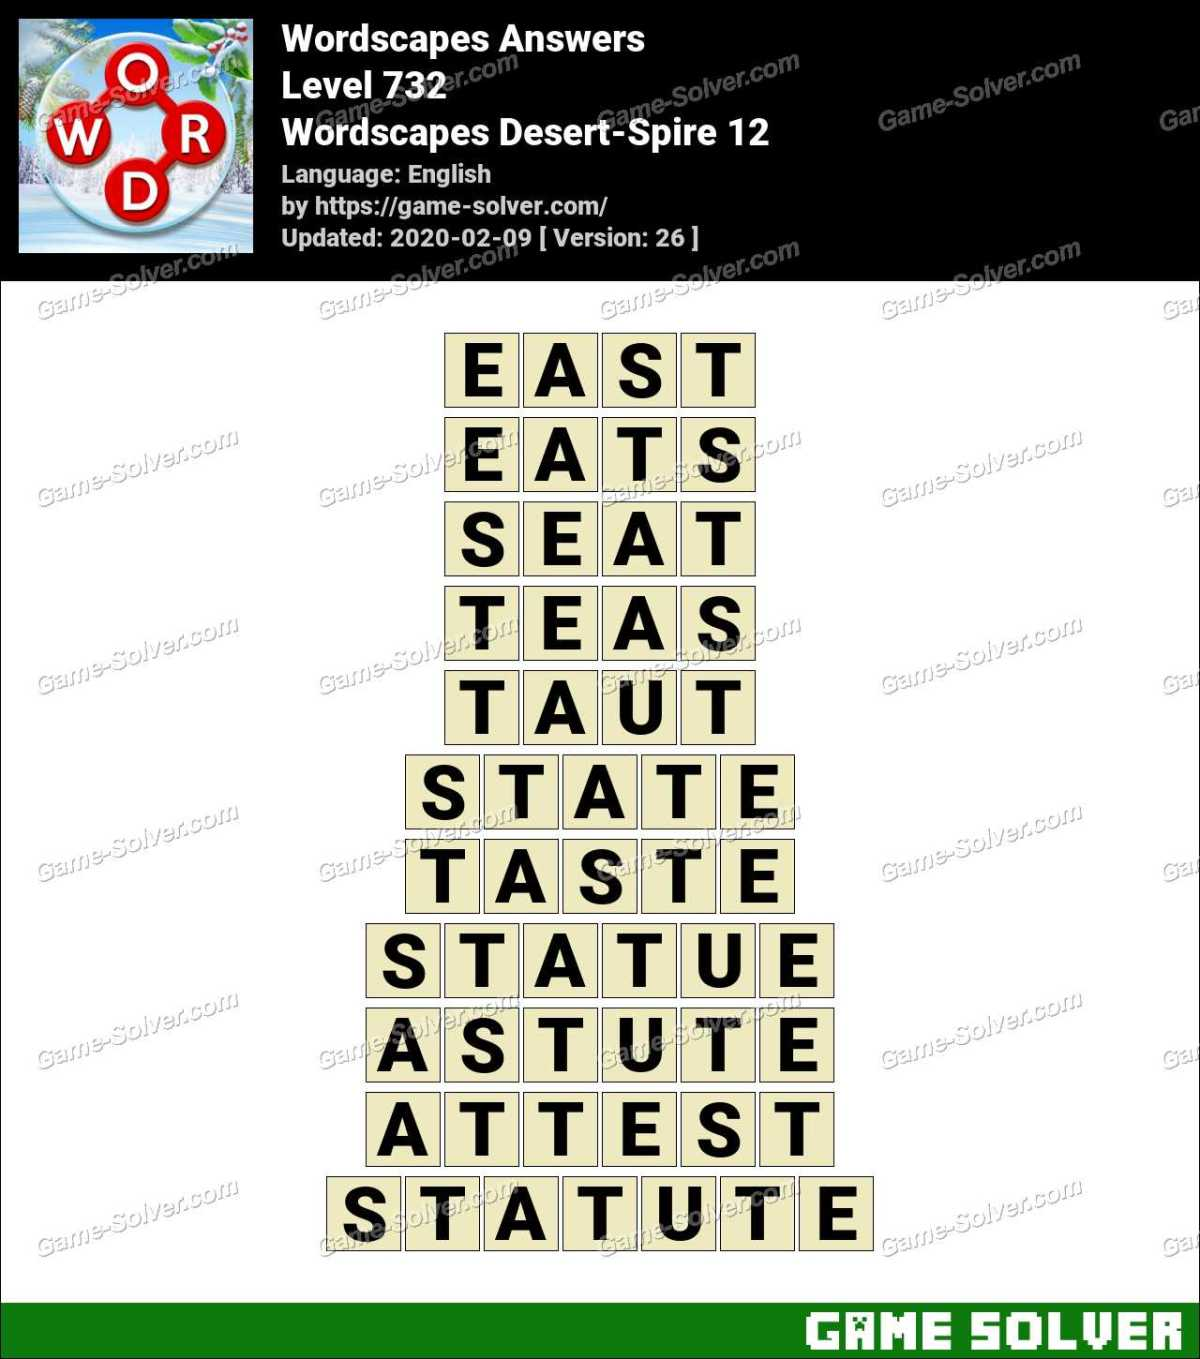 Wordscapes Desert-Spire 12 Answers